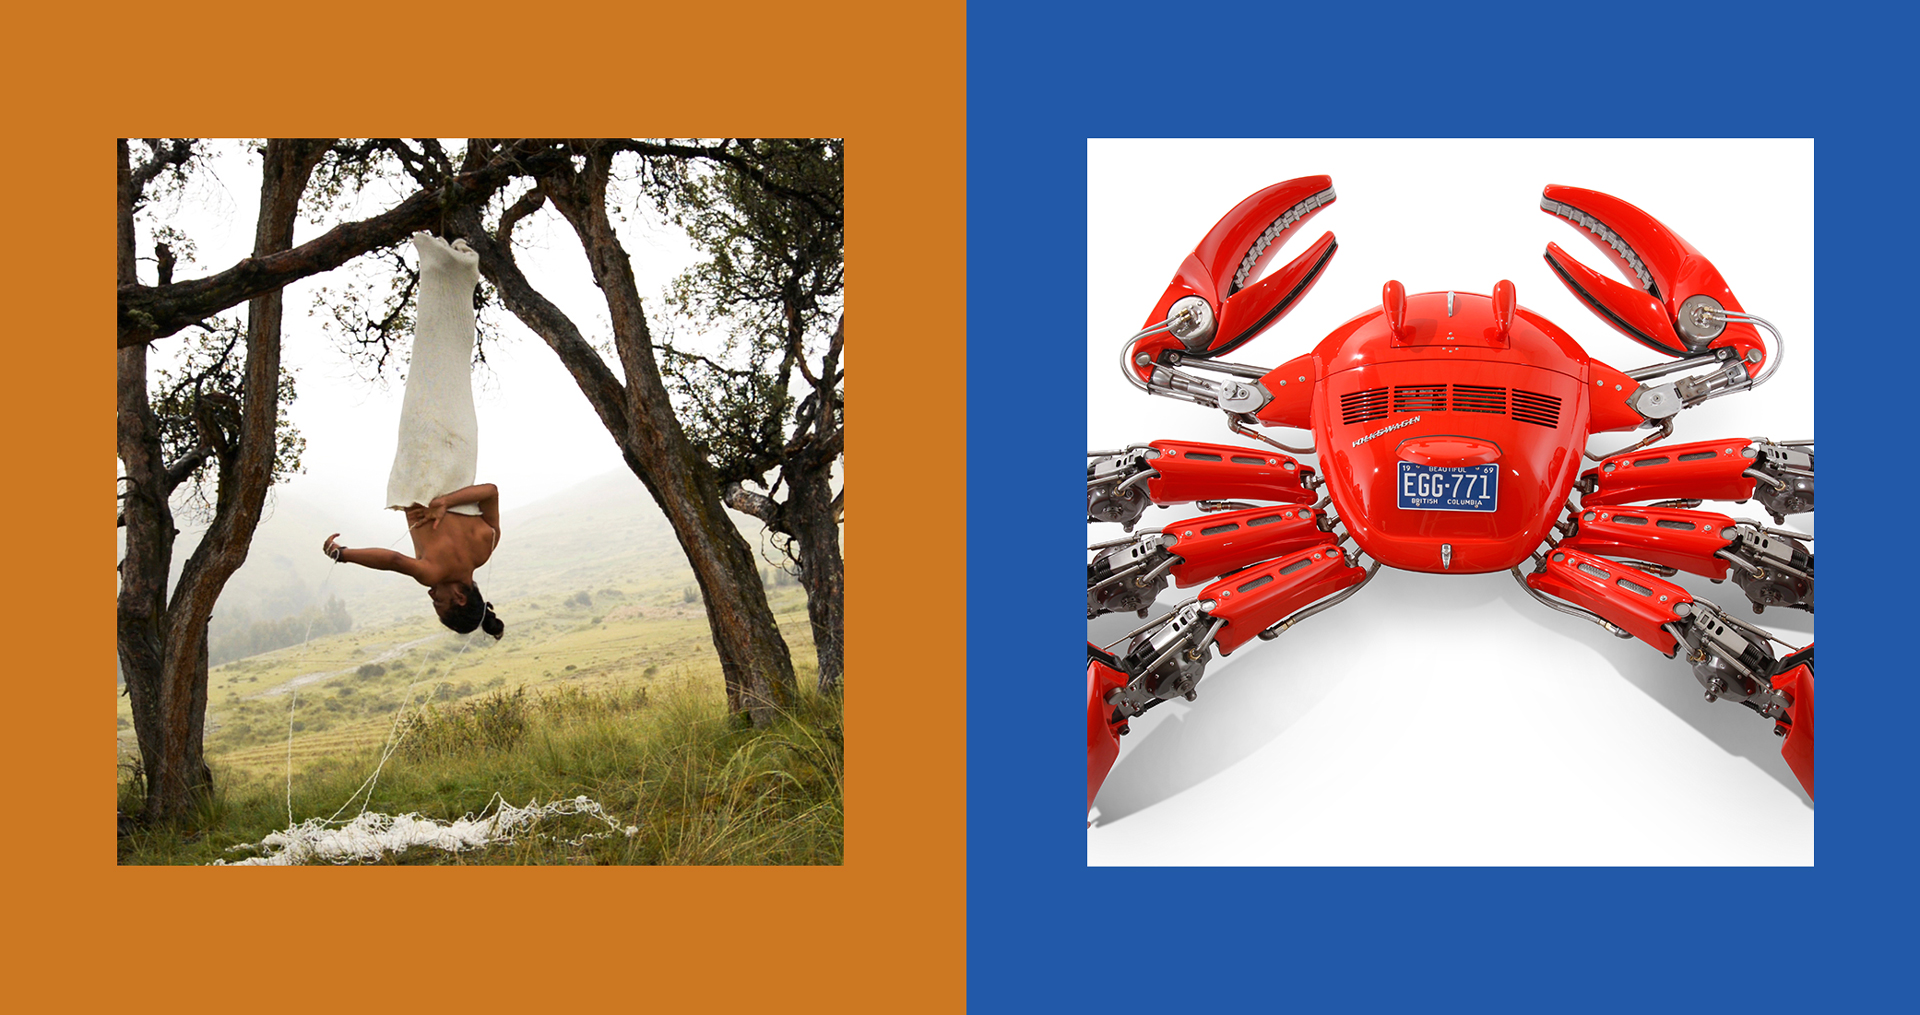 Left: Antonio Paucar (Peru, b. 1973), Suspended from a Queña Tree / Suspendido en un Queñua, 2014. HD-Video 27 min. Courtesy of the artist and Gallery Barbara Thumm, Berlin. Right: Cristian Castro (Argentina, b. 1971), EGG-771, 2008. Recycled materials, fiberglass, steel.Serial # 006. Courtesy of the artist.